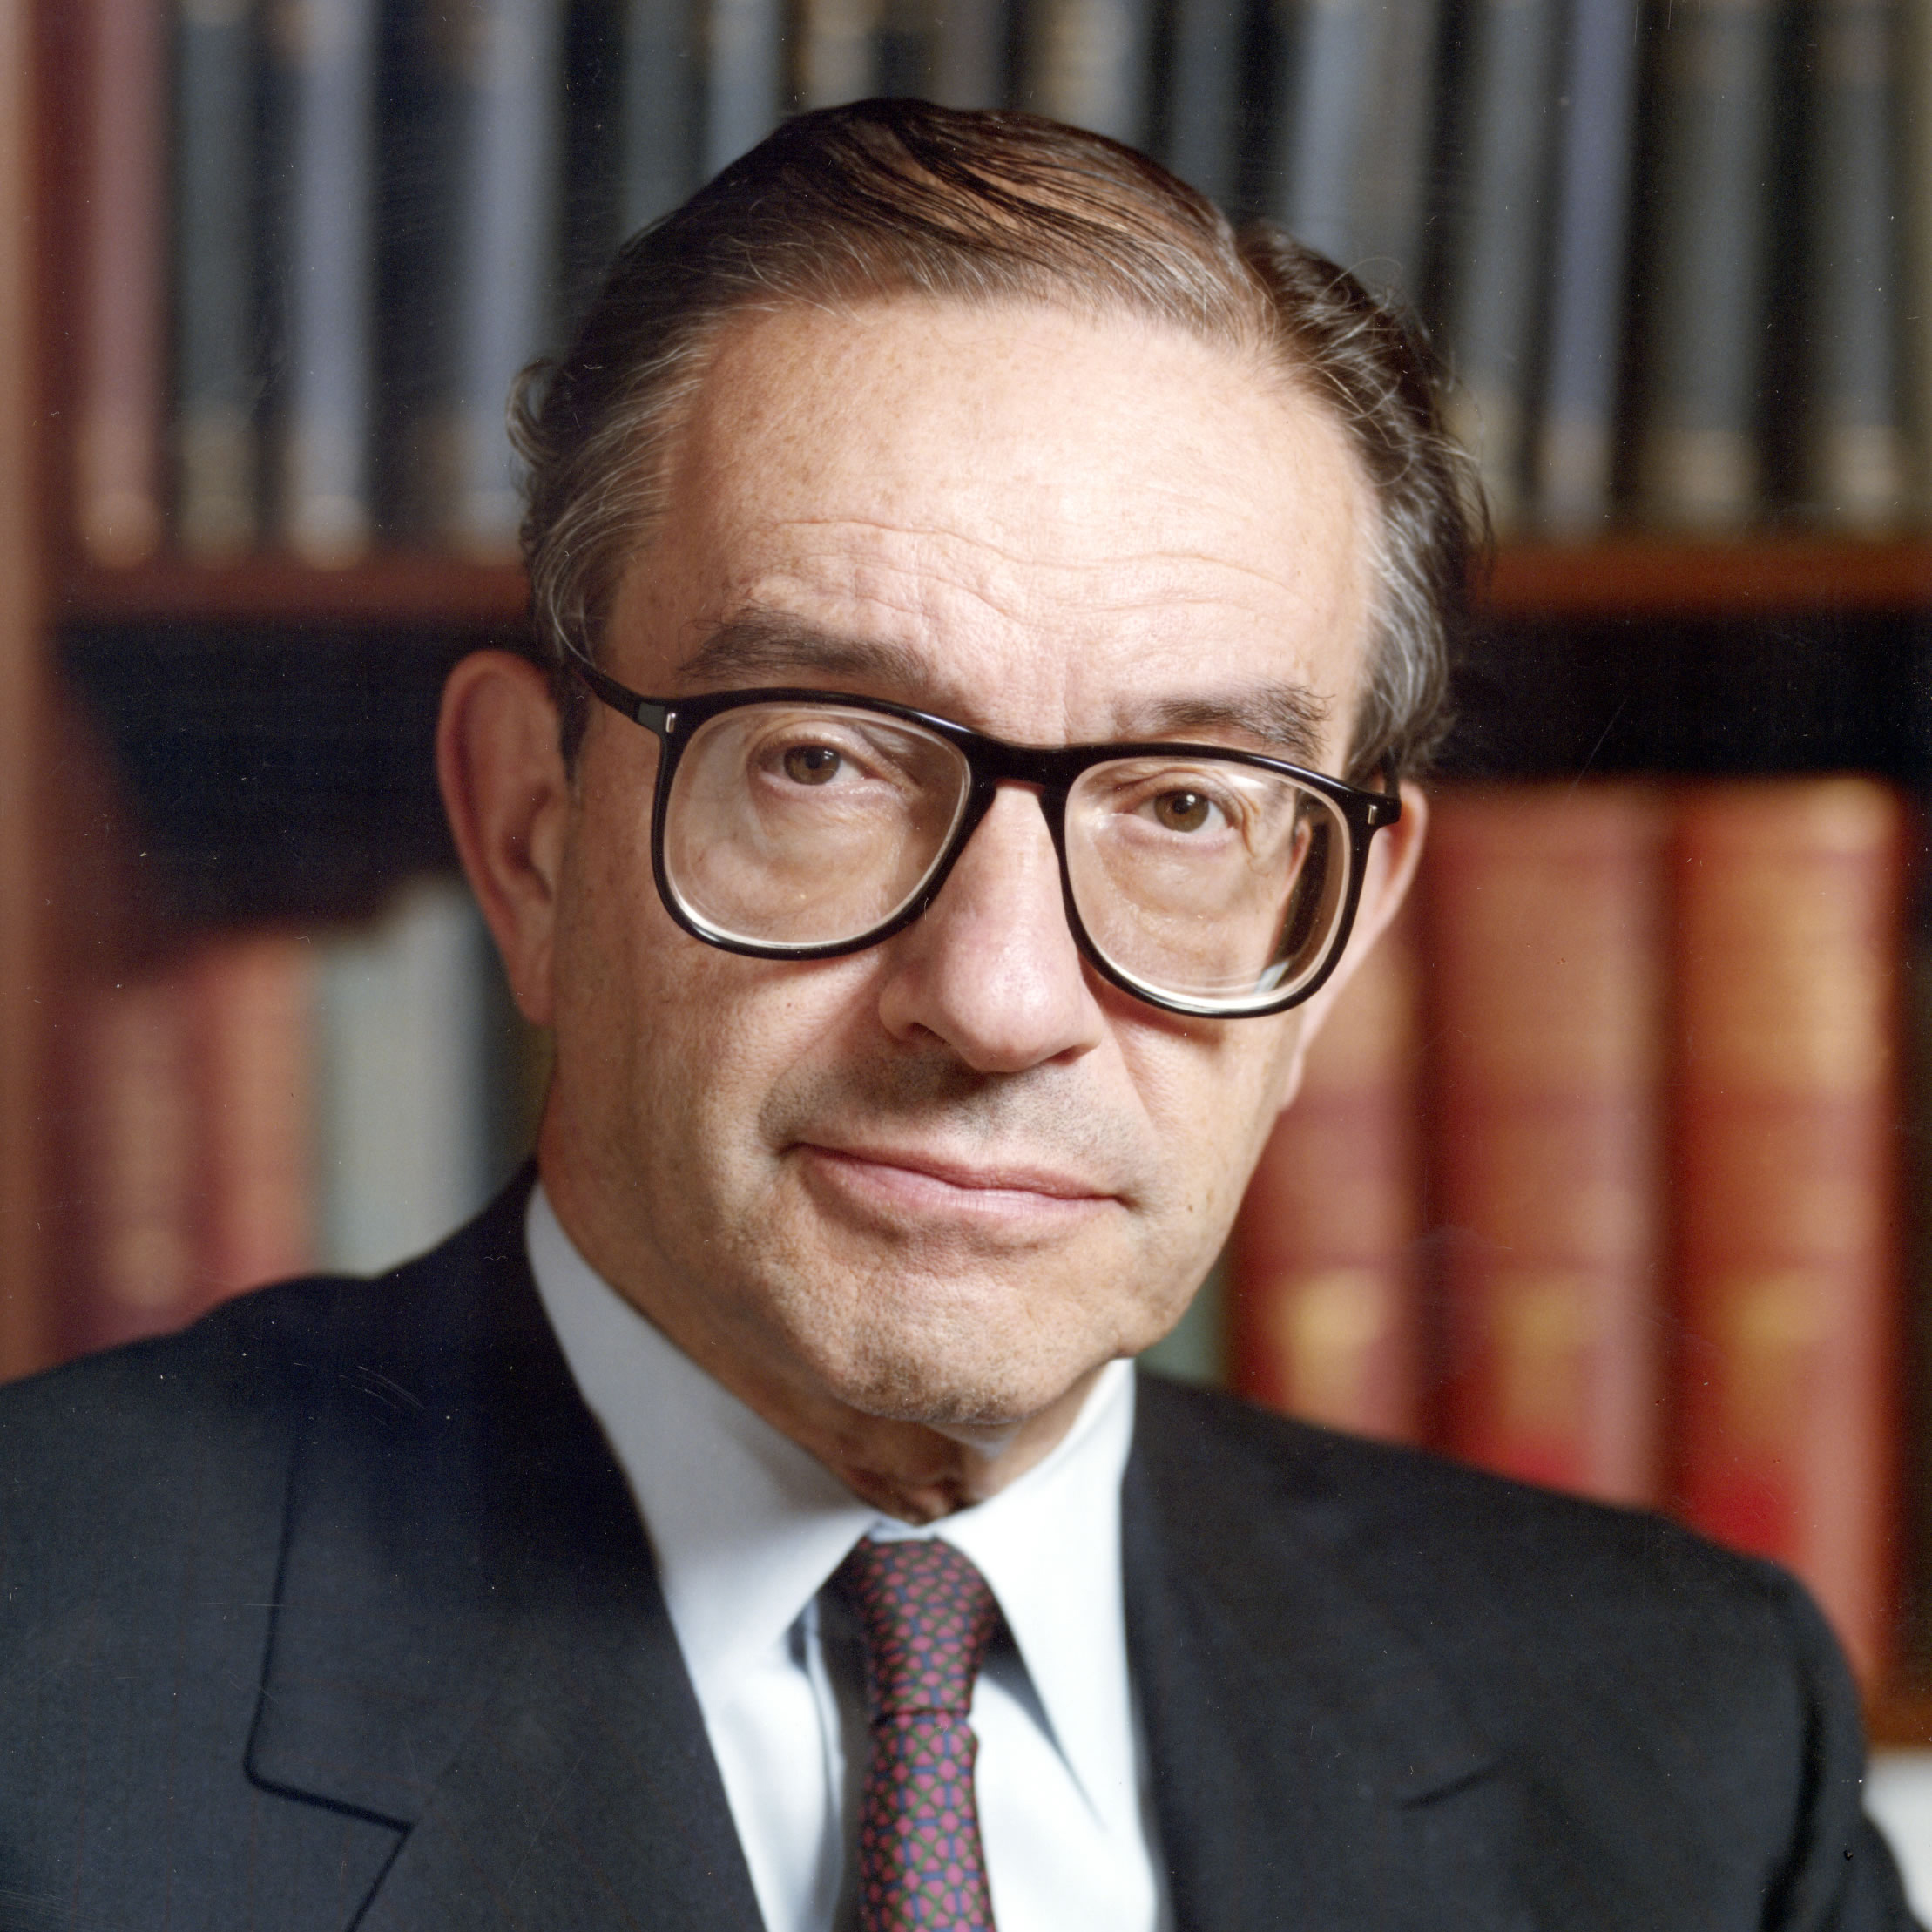 alan_greenspan_color_photo_portrait-image-rights-free_SQUARE.jpg